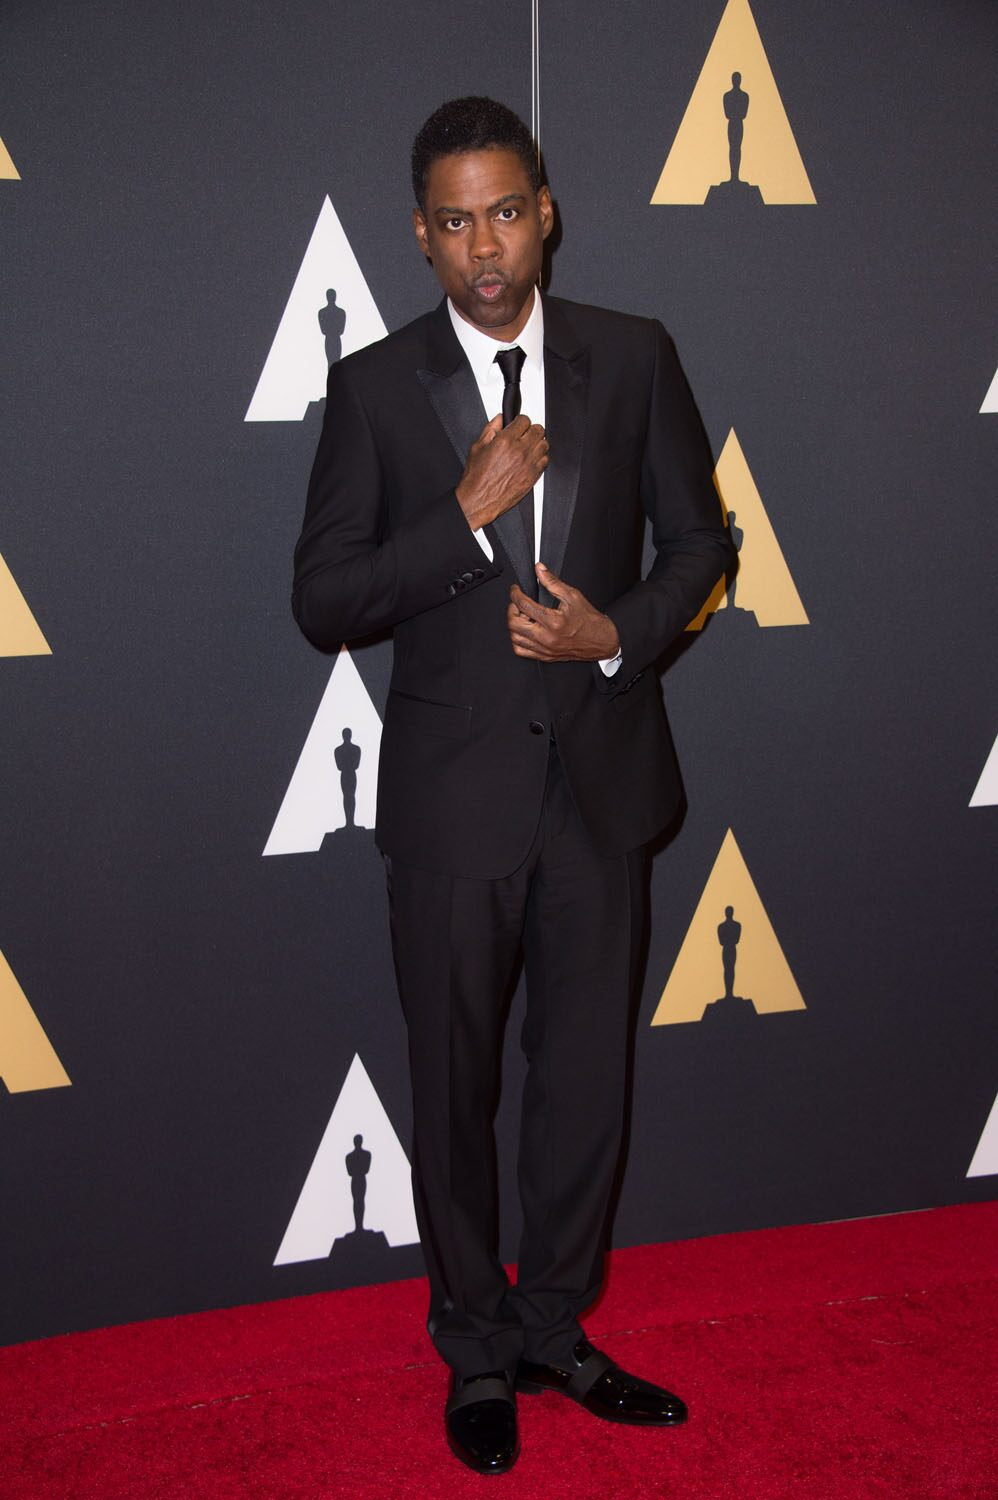 Chris Rock at the 6th Annual Governors Awards